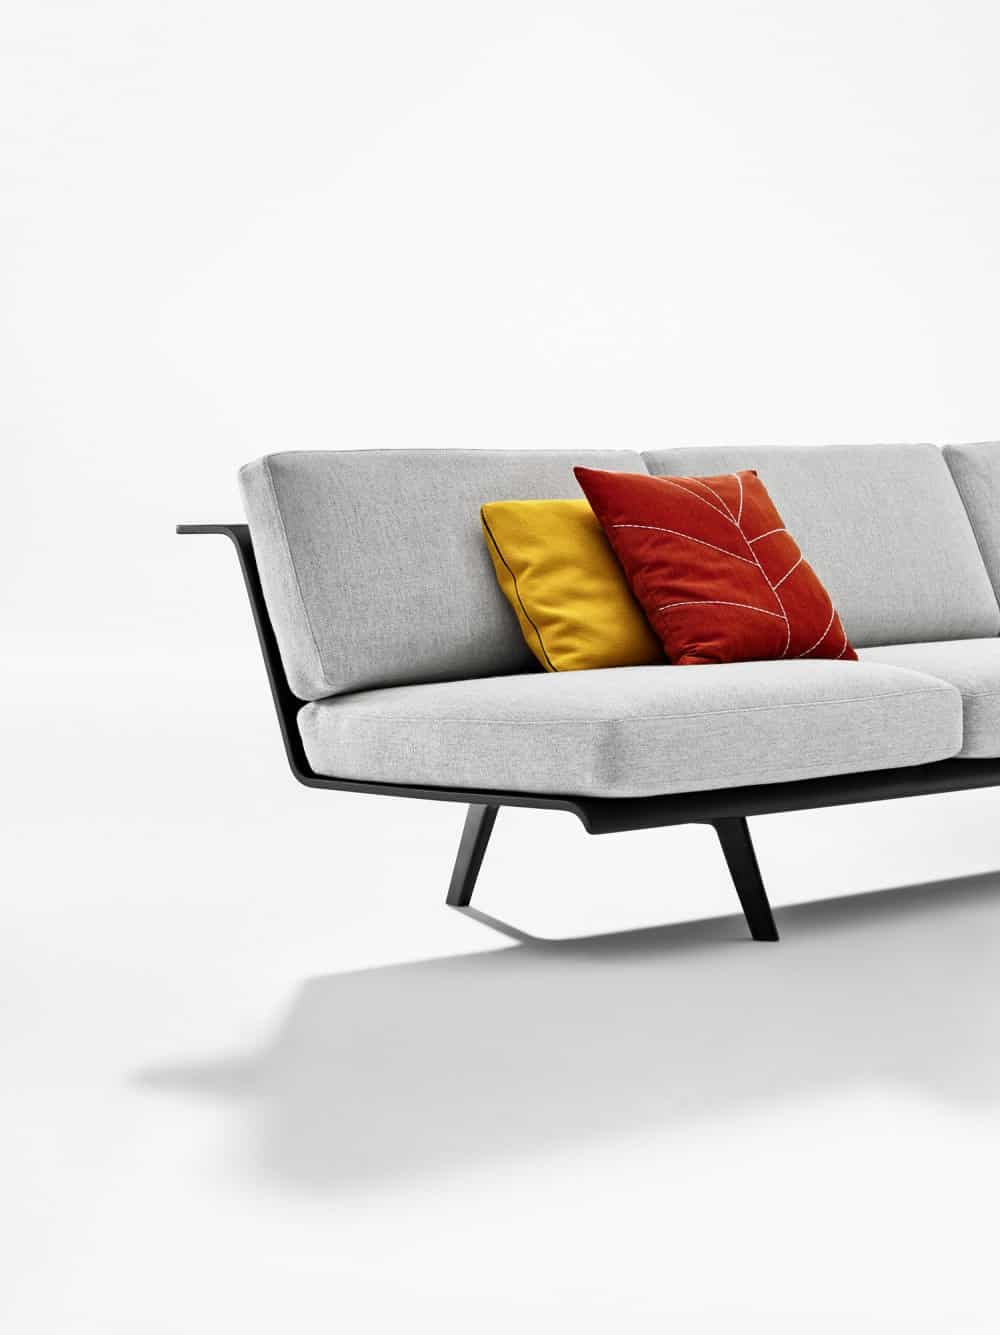 room and board leather sofa bed grey images versatile modular system: zinta from arper